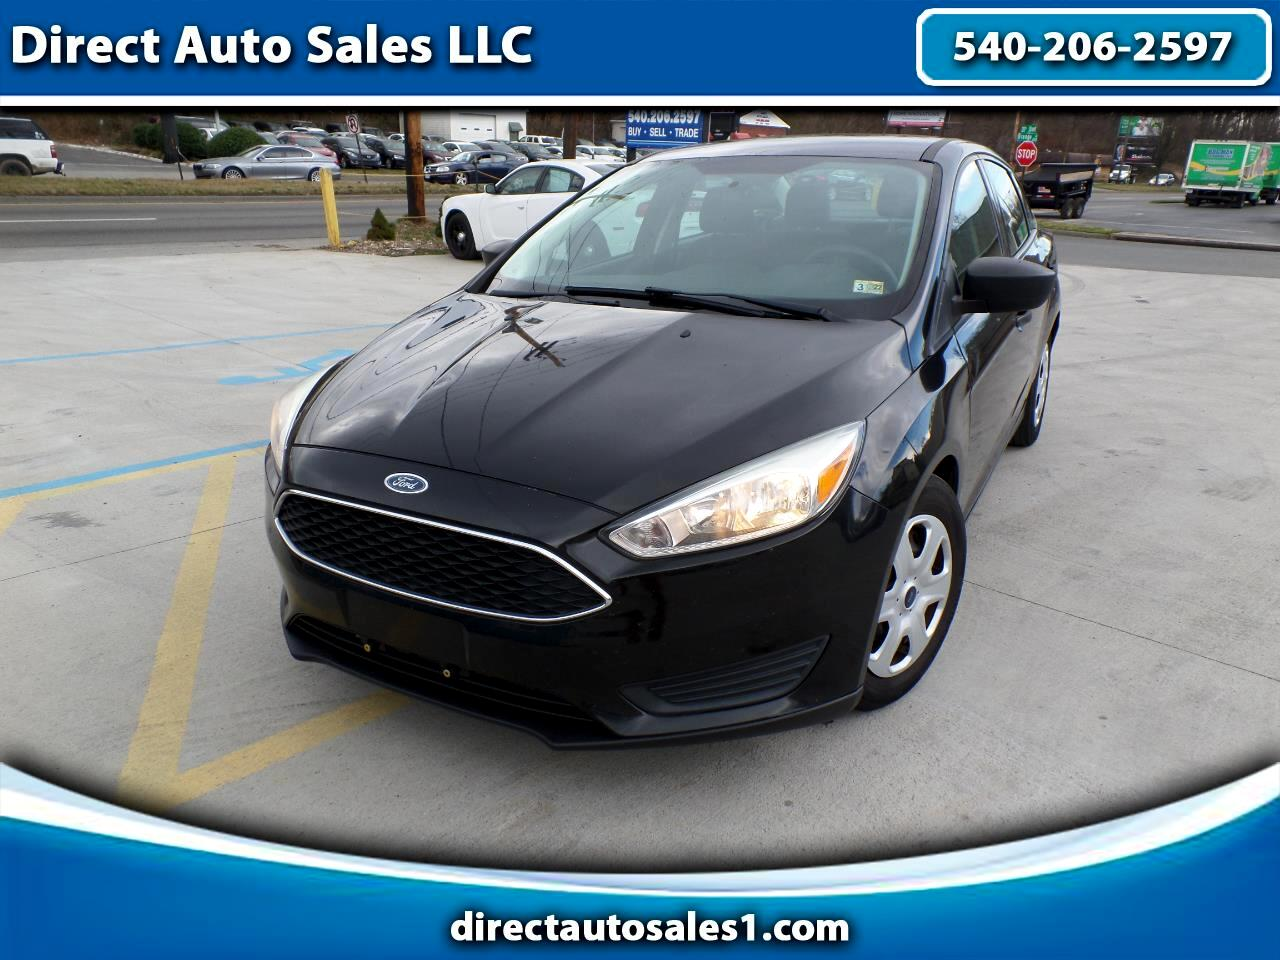 Ford Focus 4dr Sdn S 2015